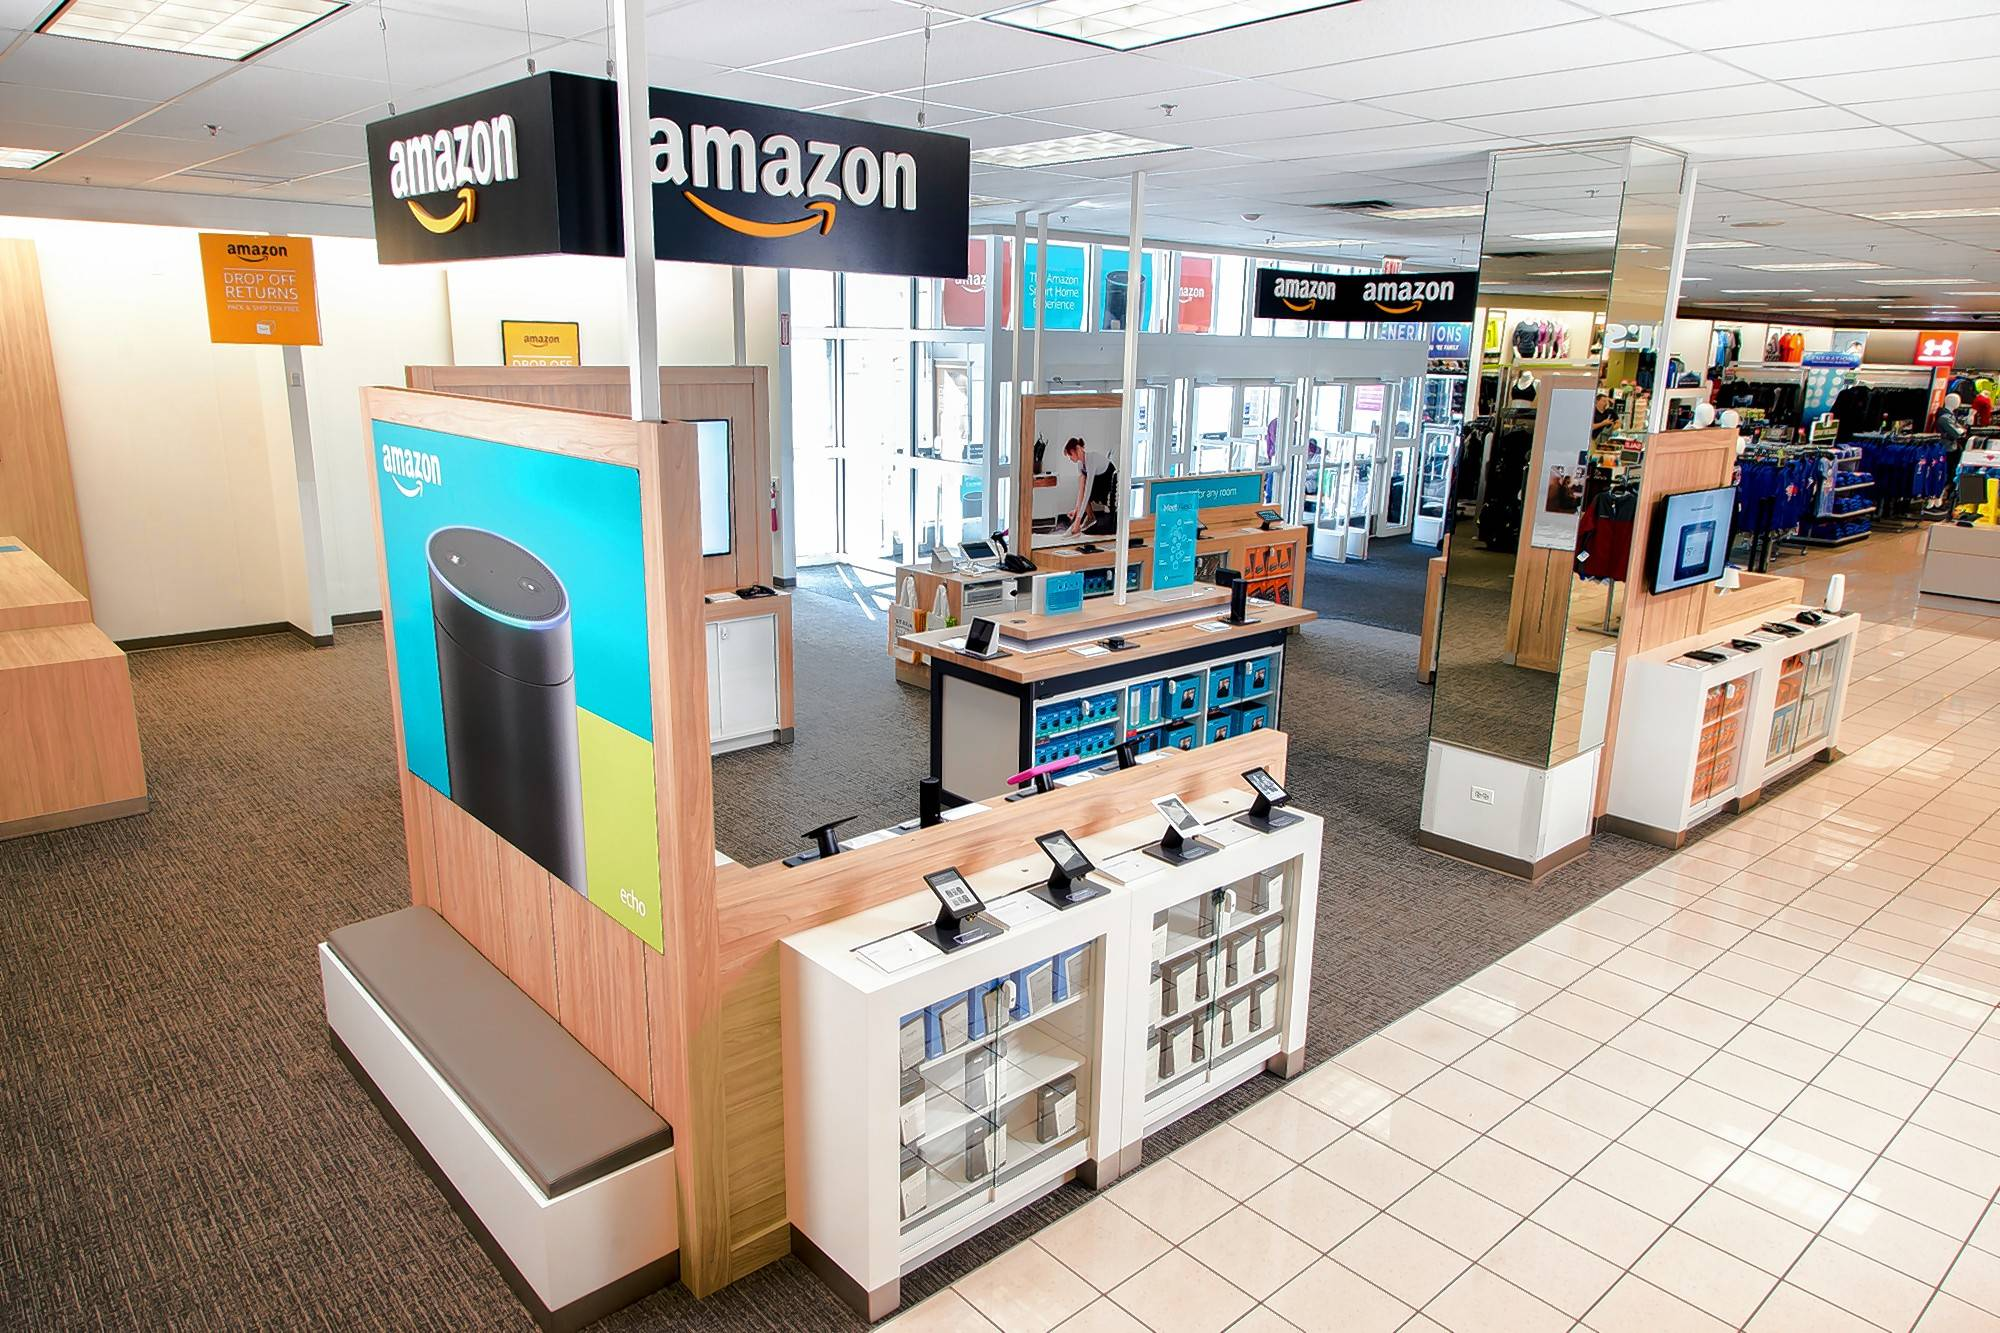 Kohl's stores in suburbs among first to get Amazon returns service